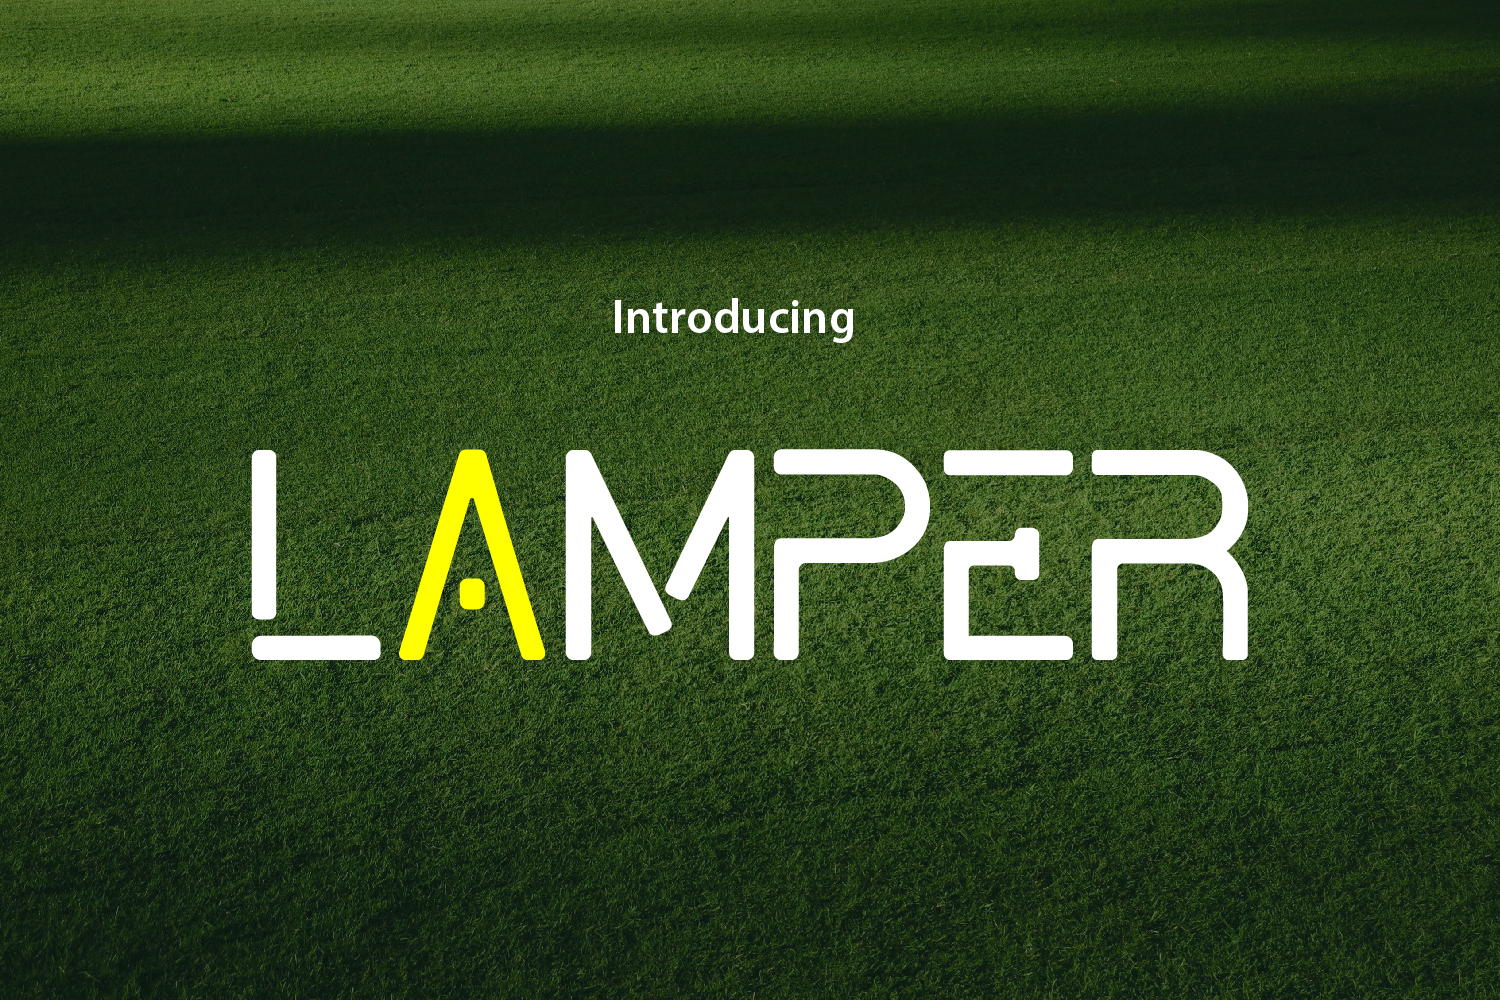 LAMPER example image 2